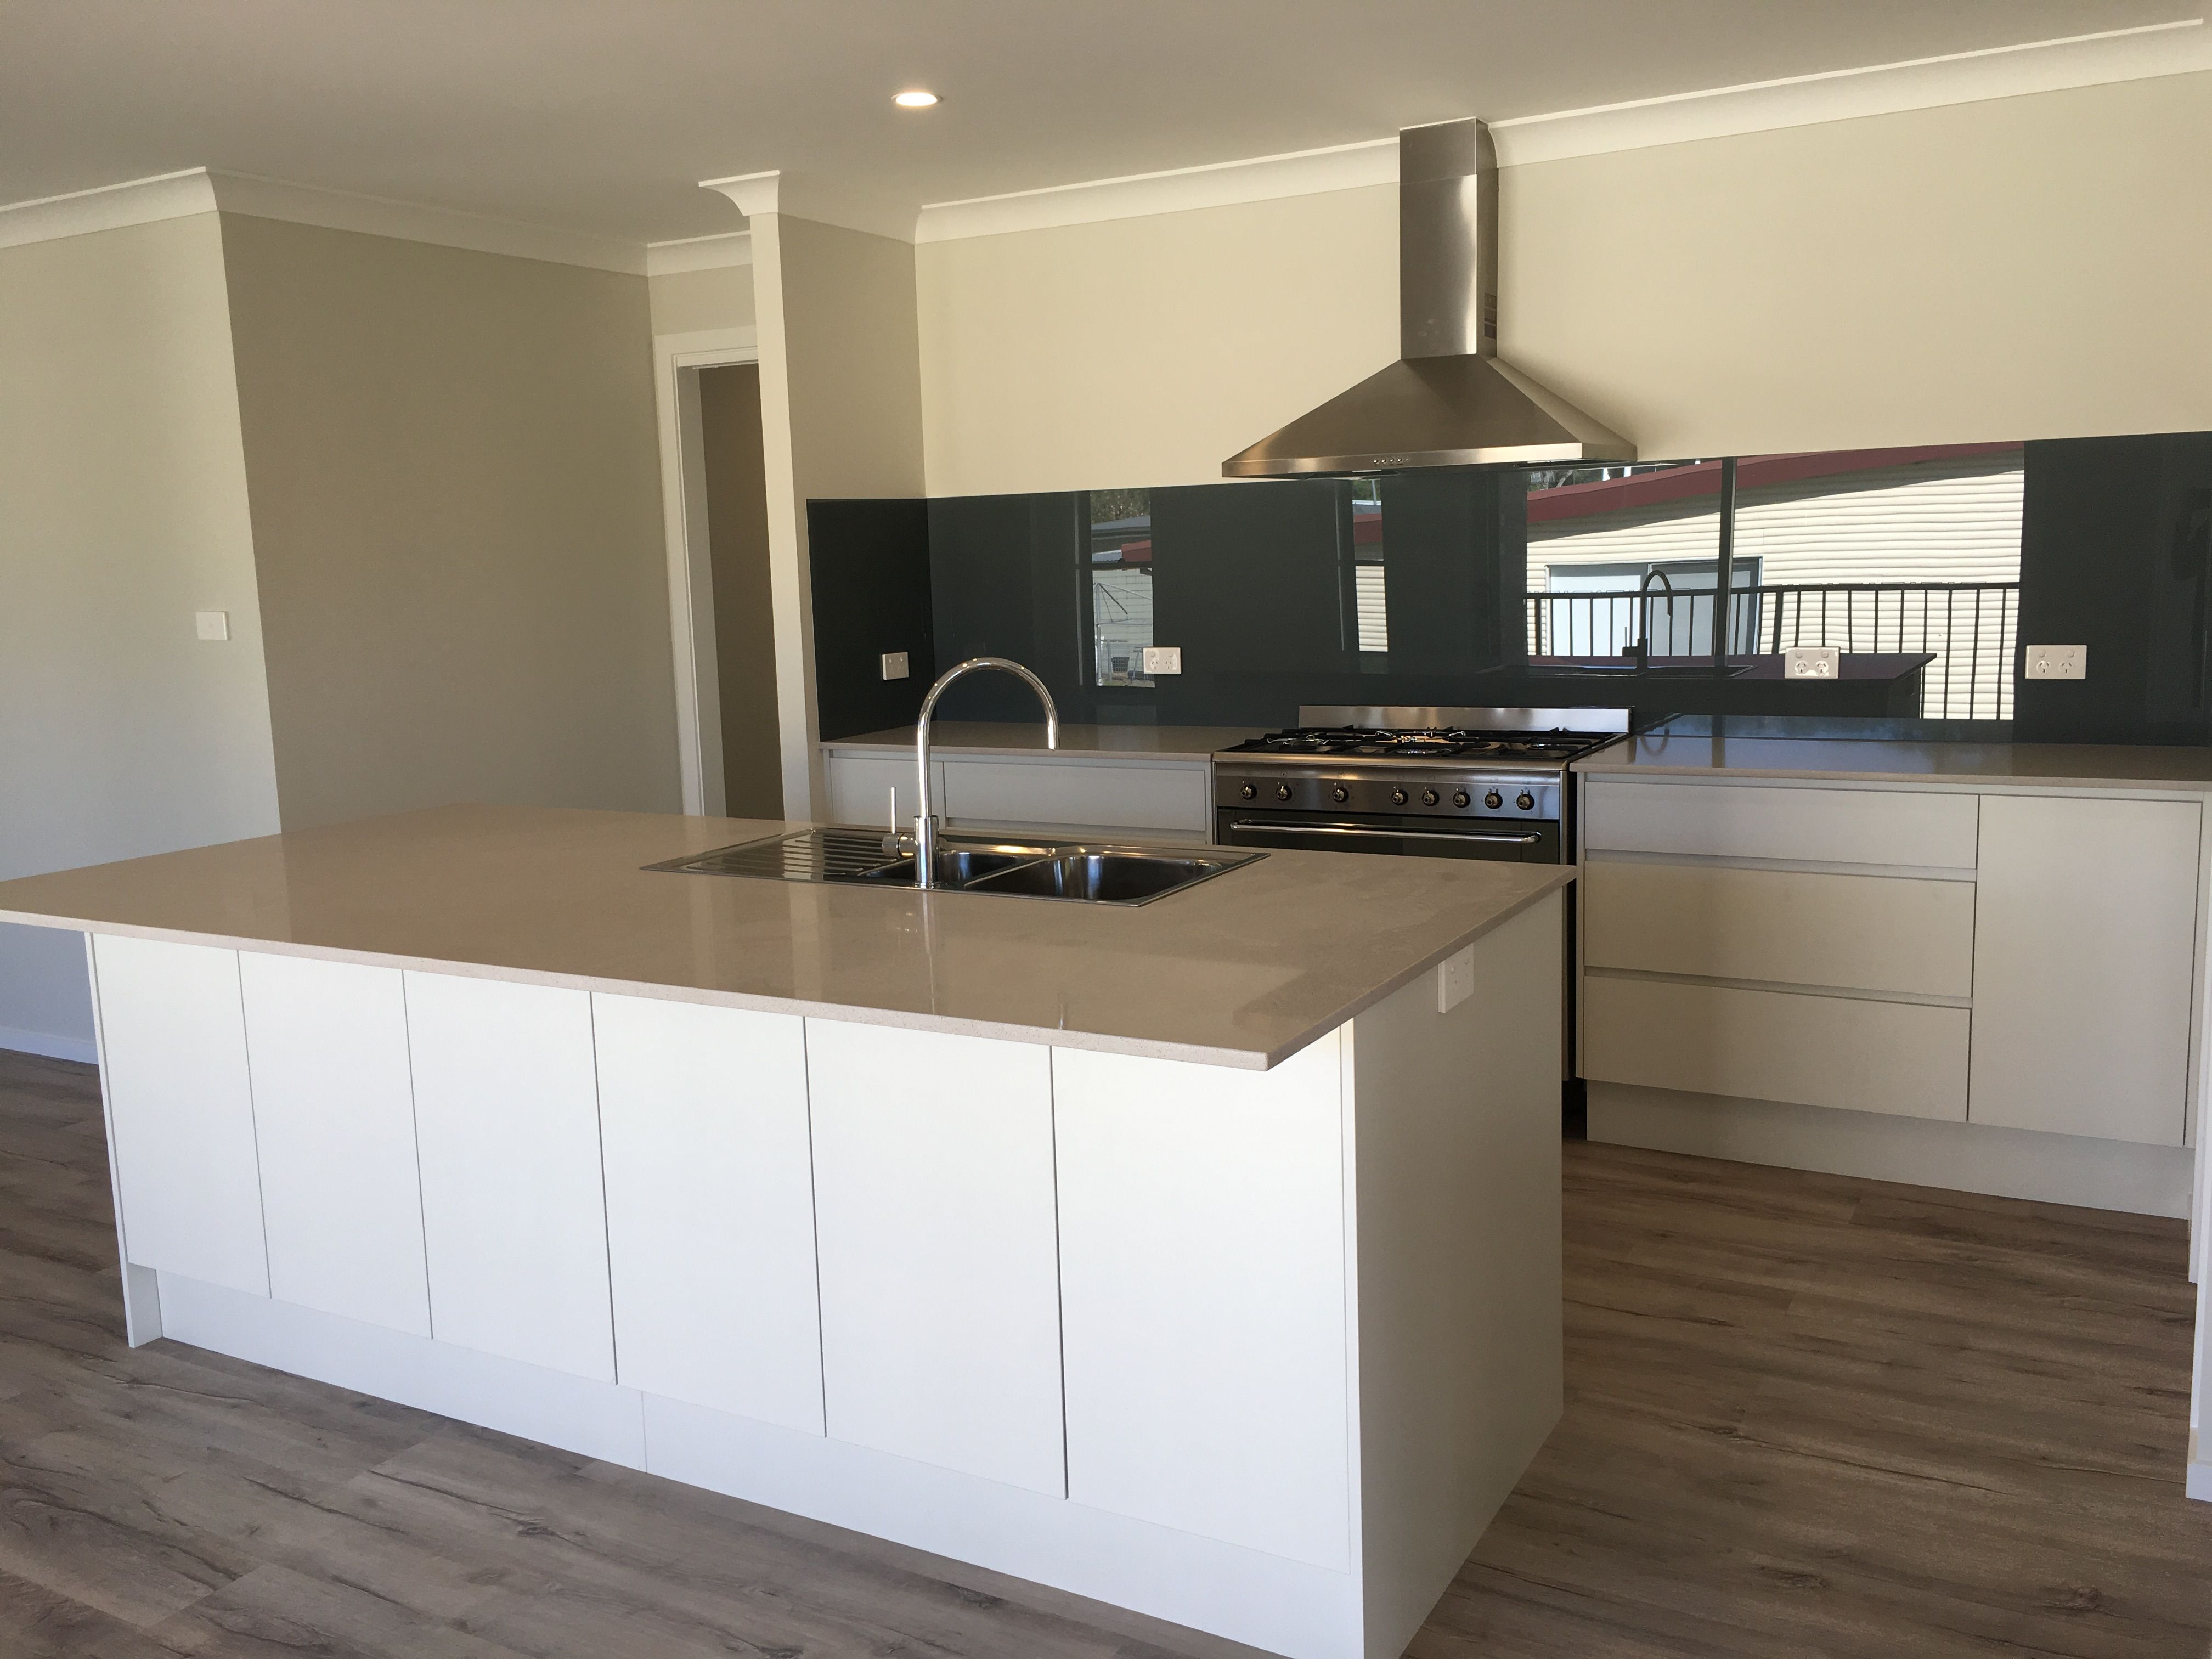 Custom Kitchen Fit Out With No Overhead Cupboards And Glass Splashback Kitchen Remodel Kitchen Fittings Kitchen